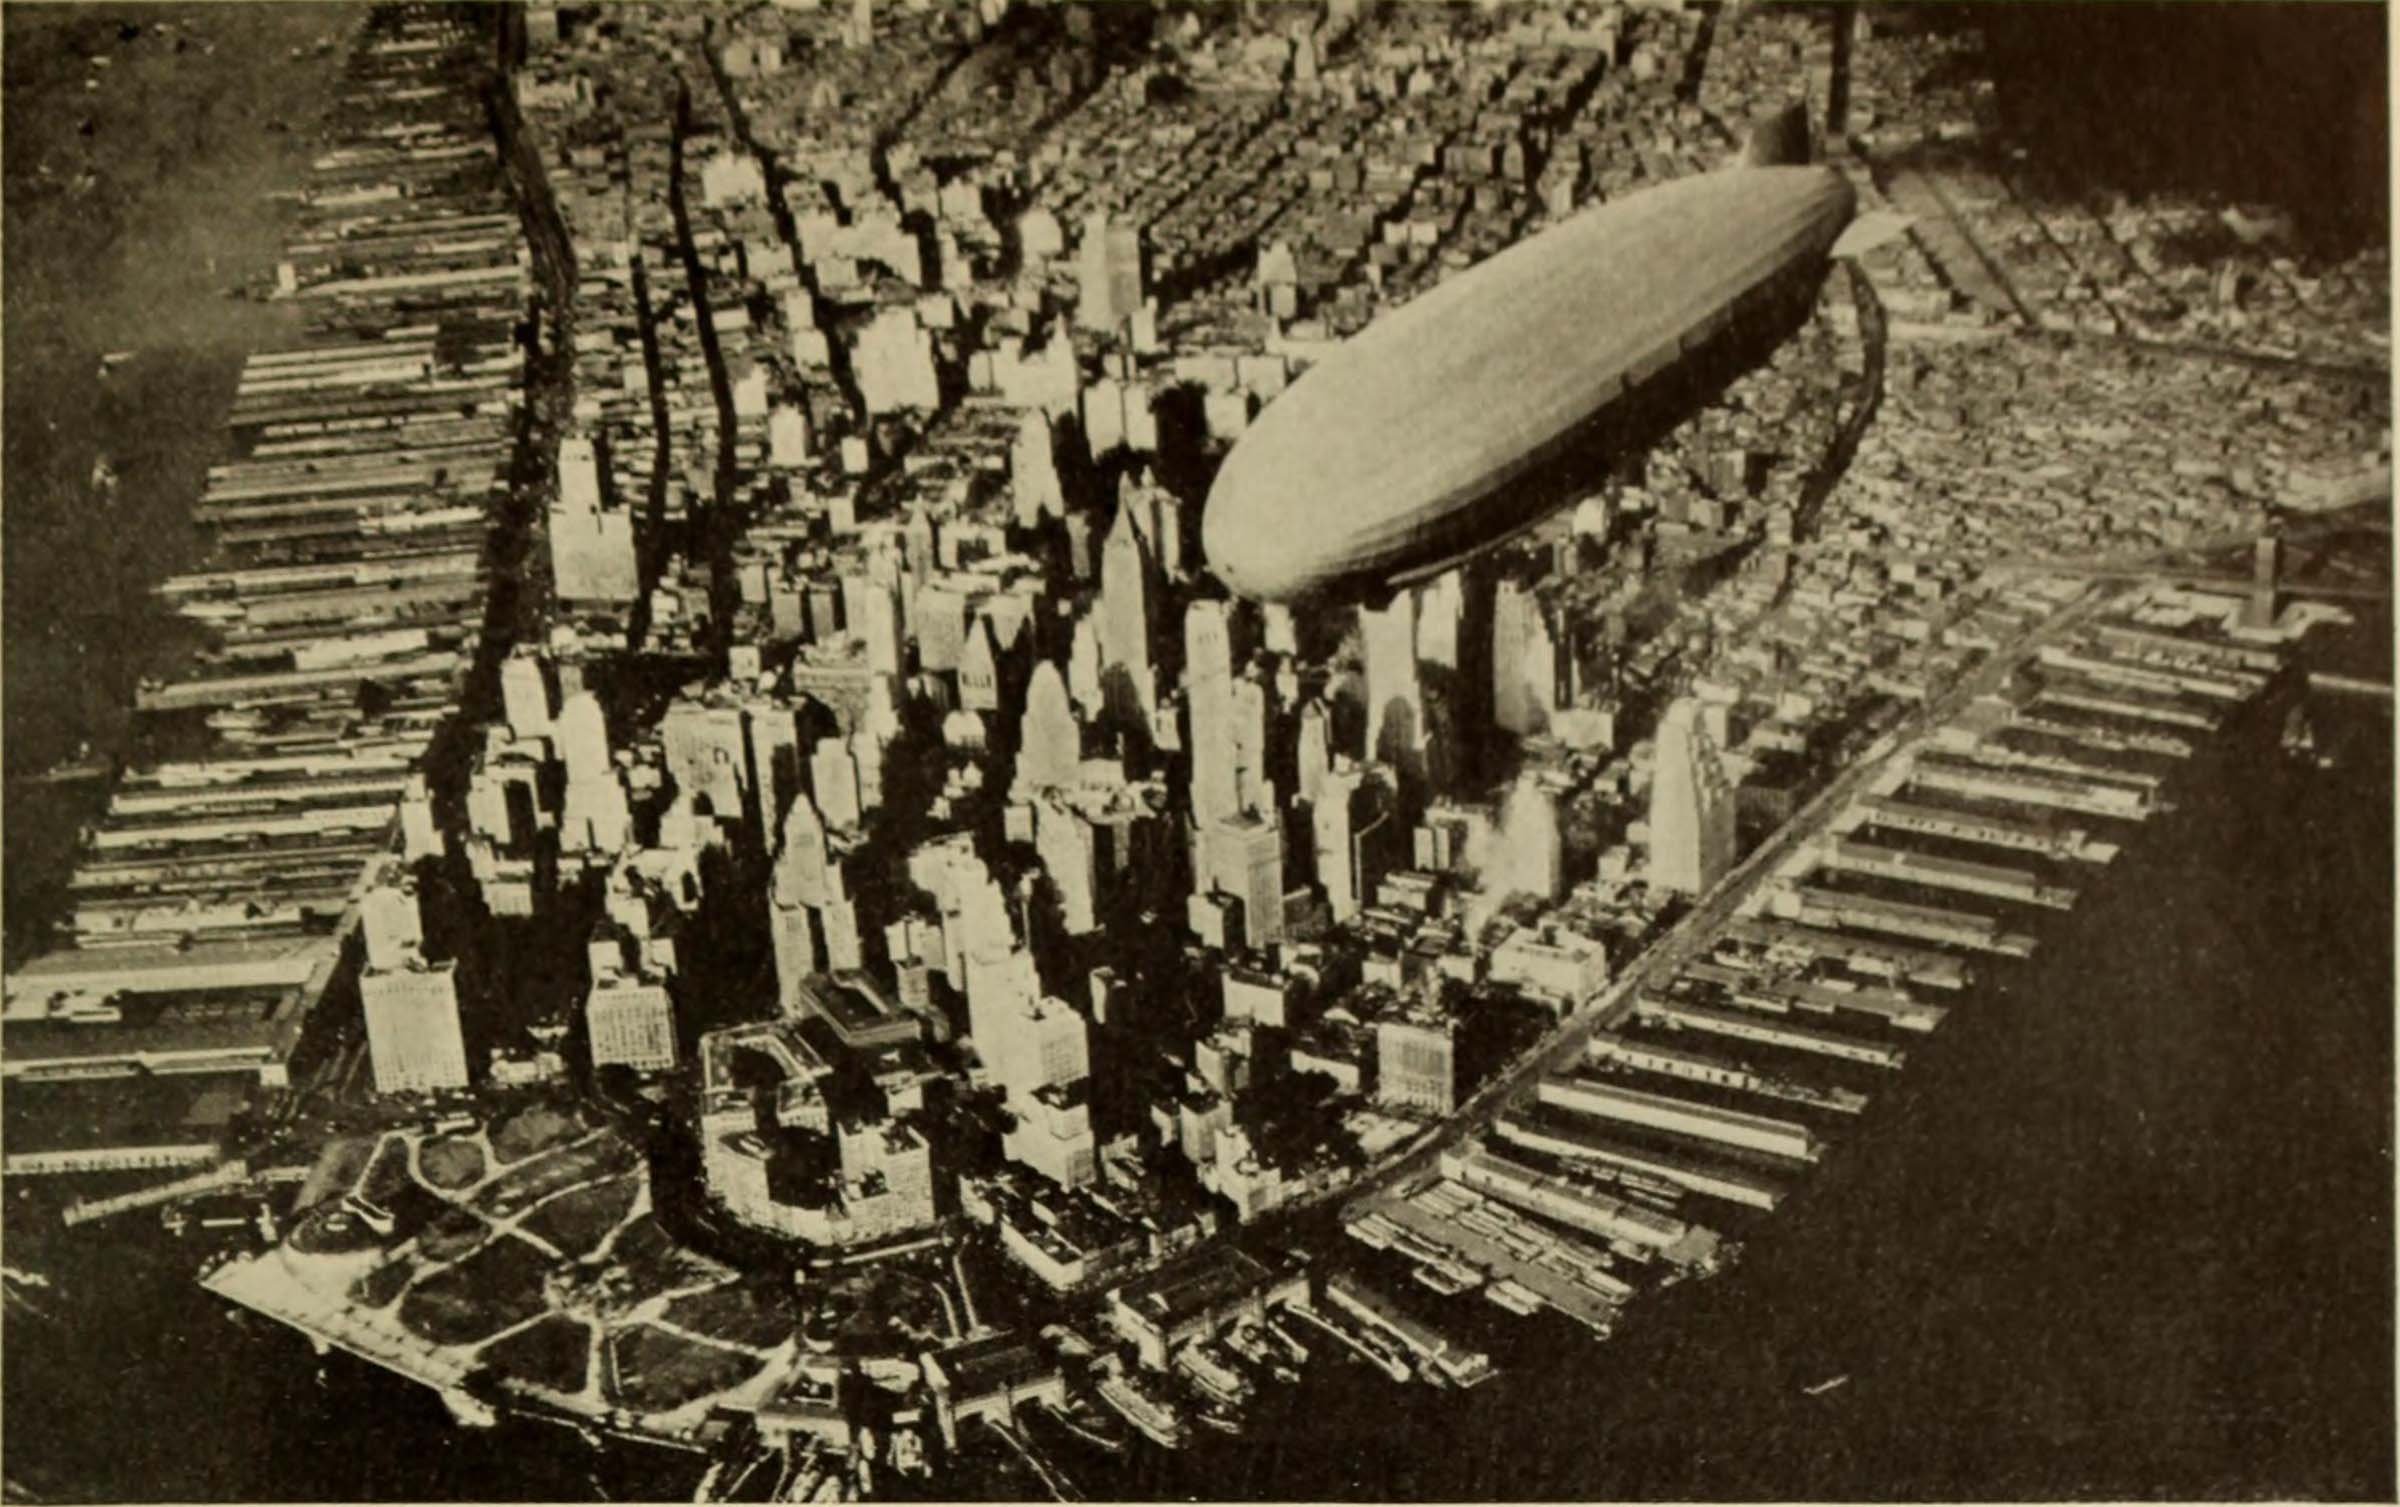 Historic image of downtown Manhattan with a blimp passing by